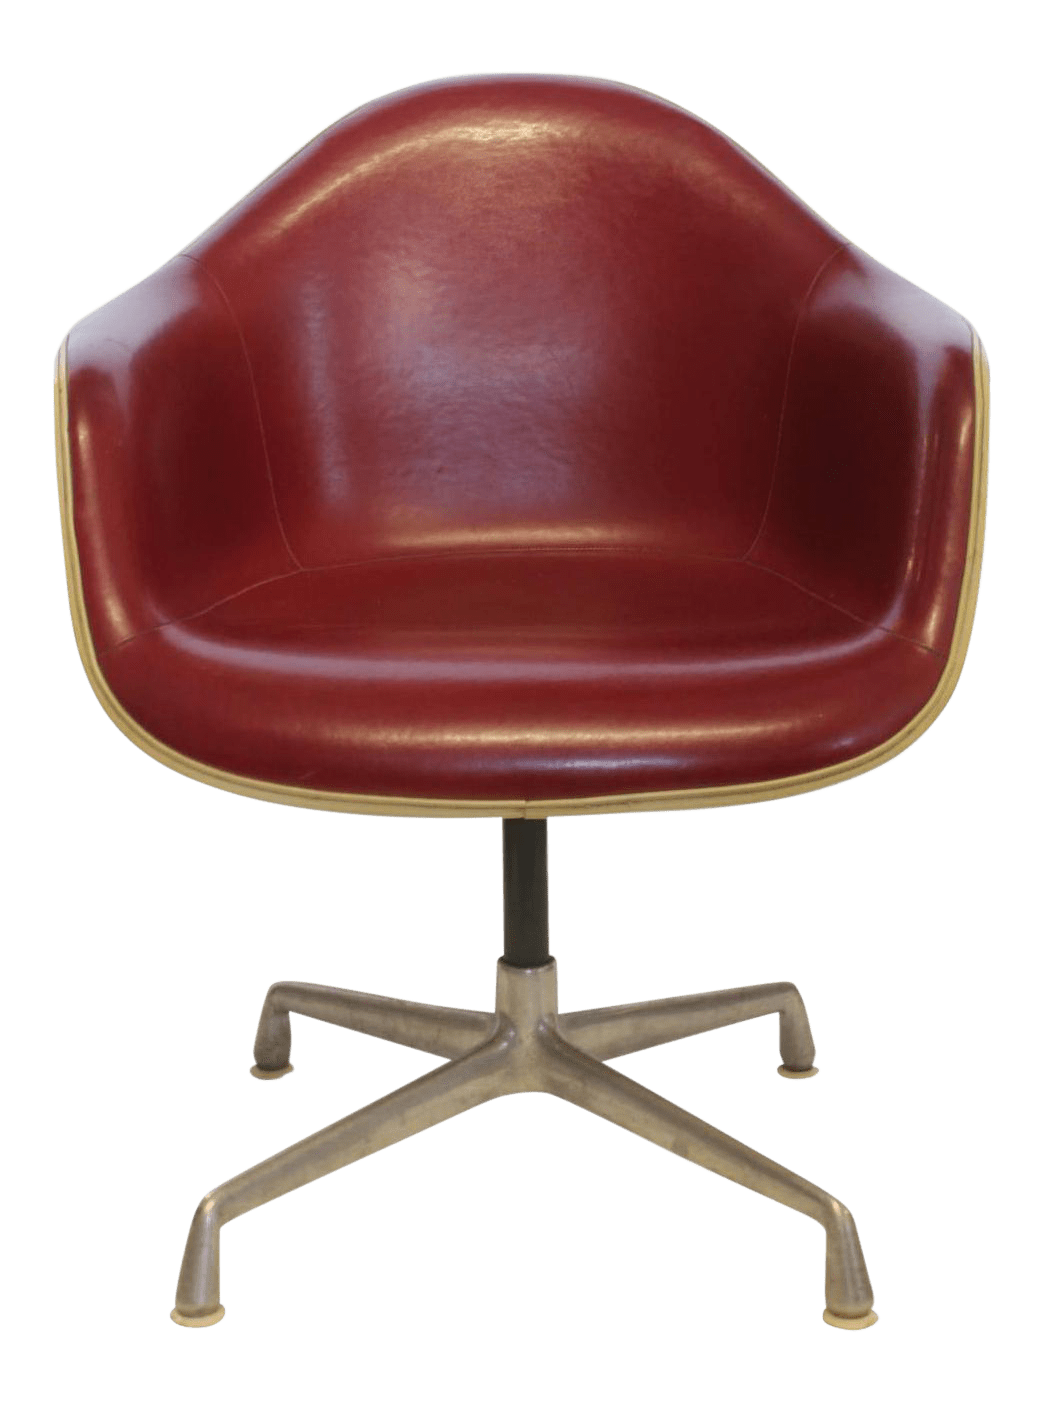 Charles Eames Charles Eames For Herman Miller Swivel Bucket Chair